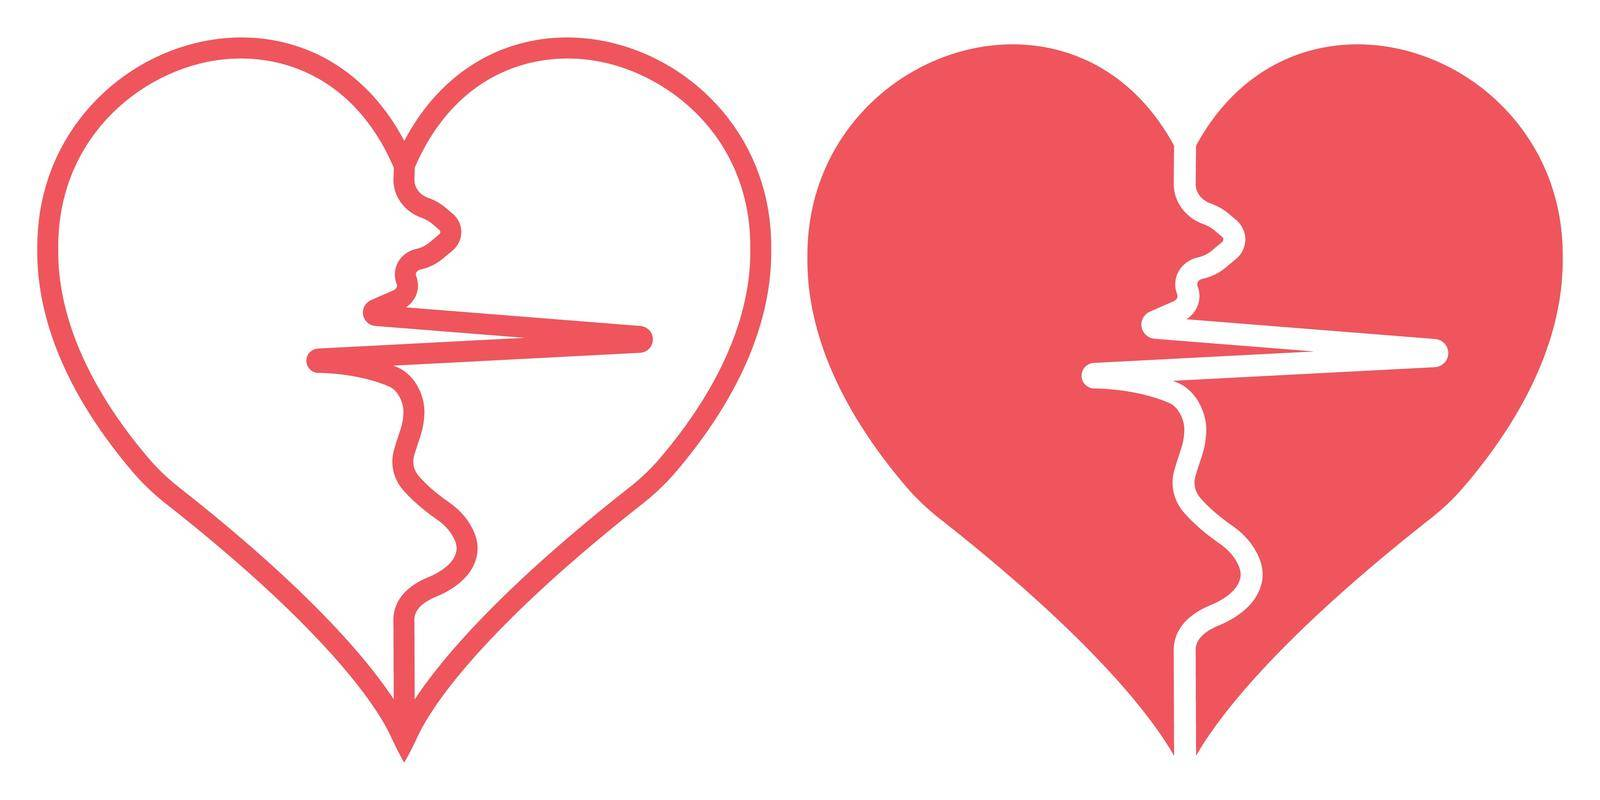 two halves of the heart separated by the pulse sign, vector pulse heart symbol of health and sport healthy lifestyle concept by koksikoks